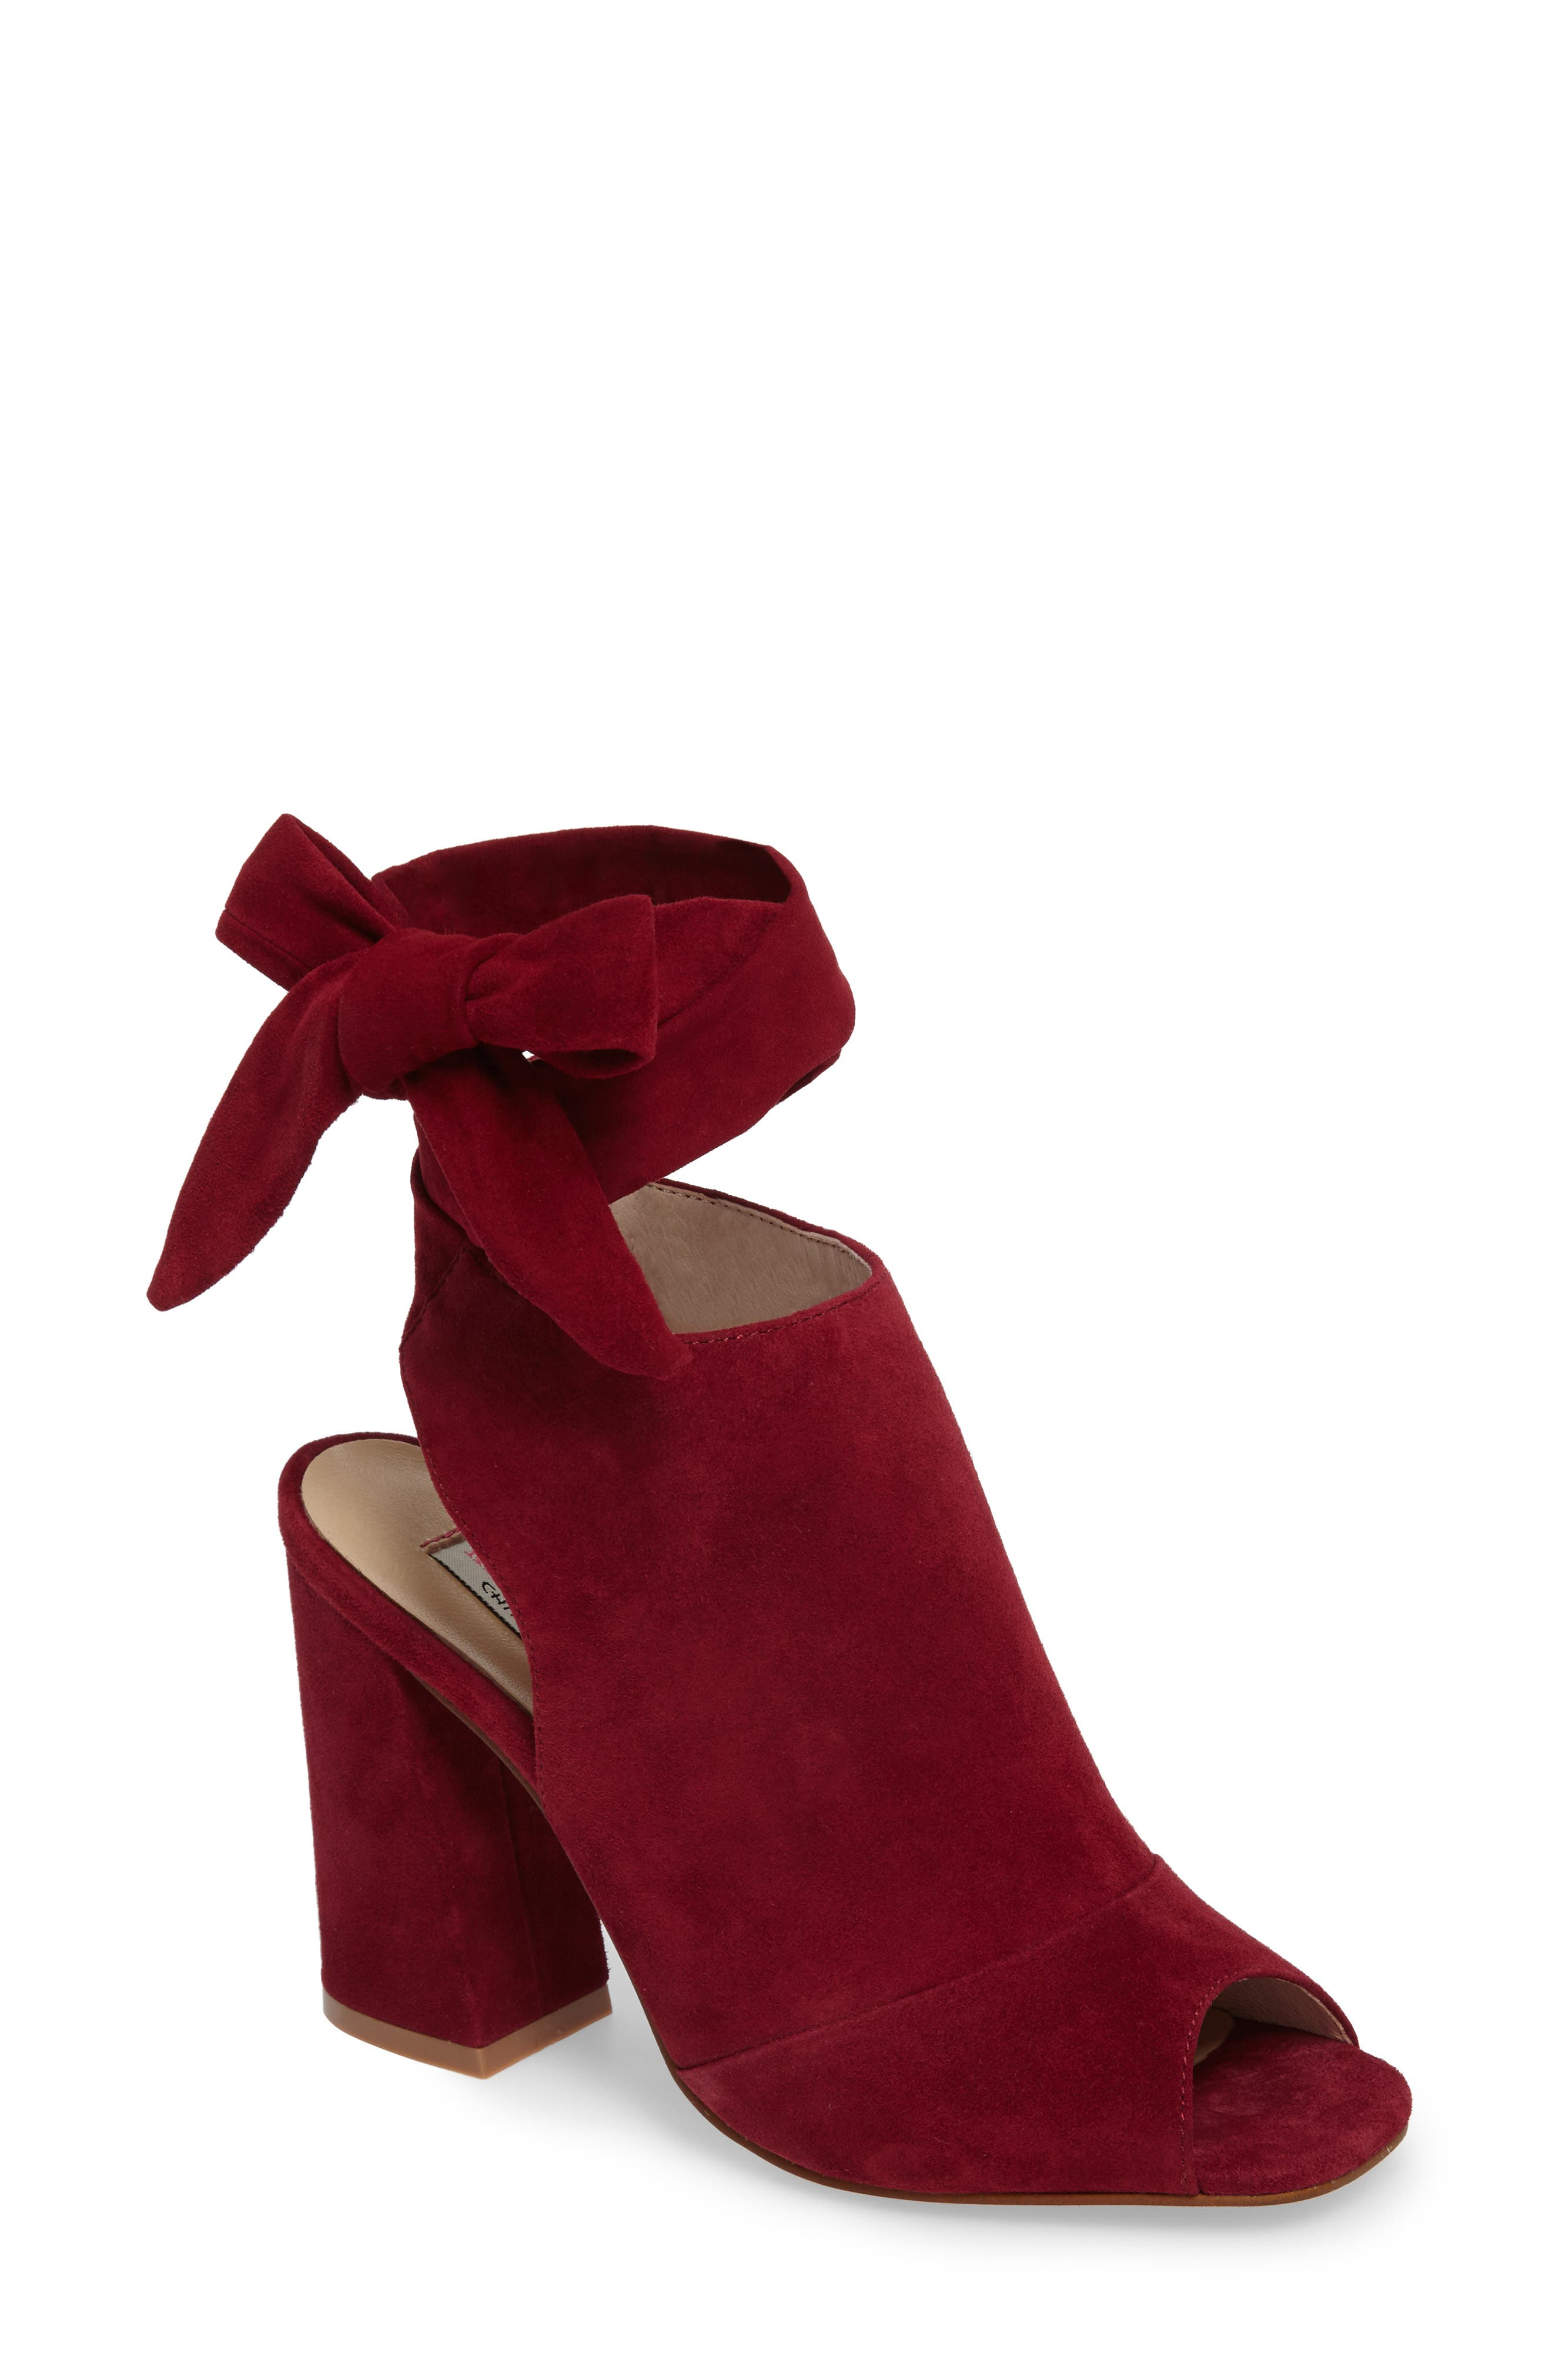 Leeds Peep Toe Bootie,                             Main thumbnail 1, color,                             Berry Suede